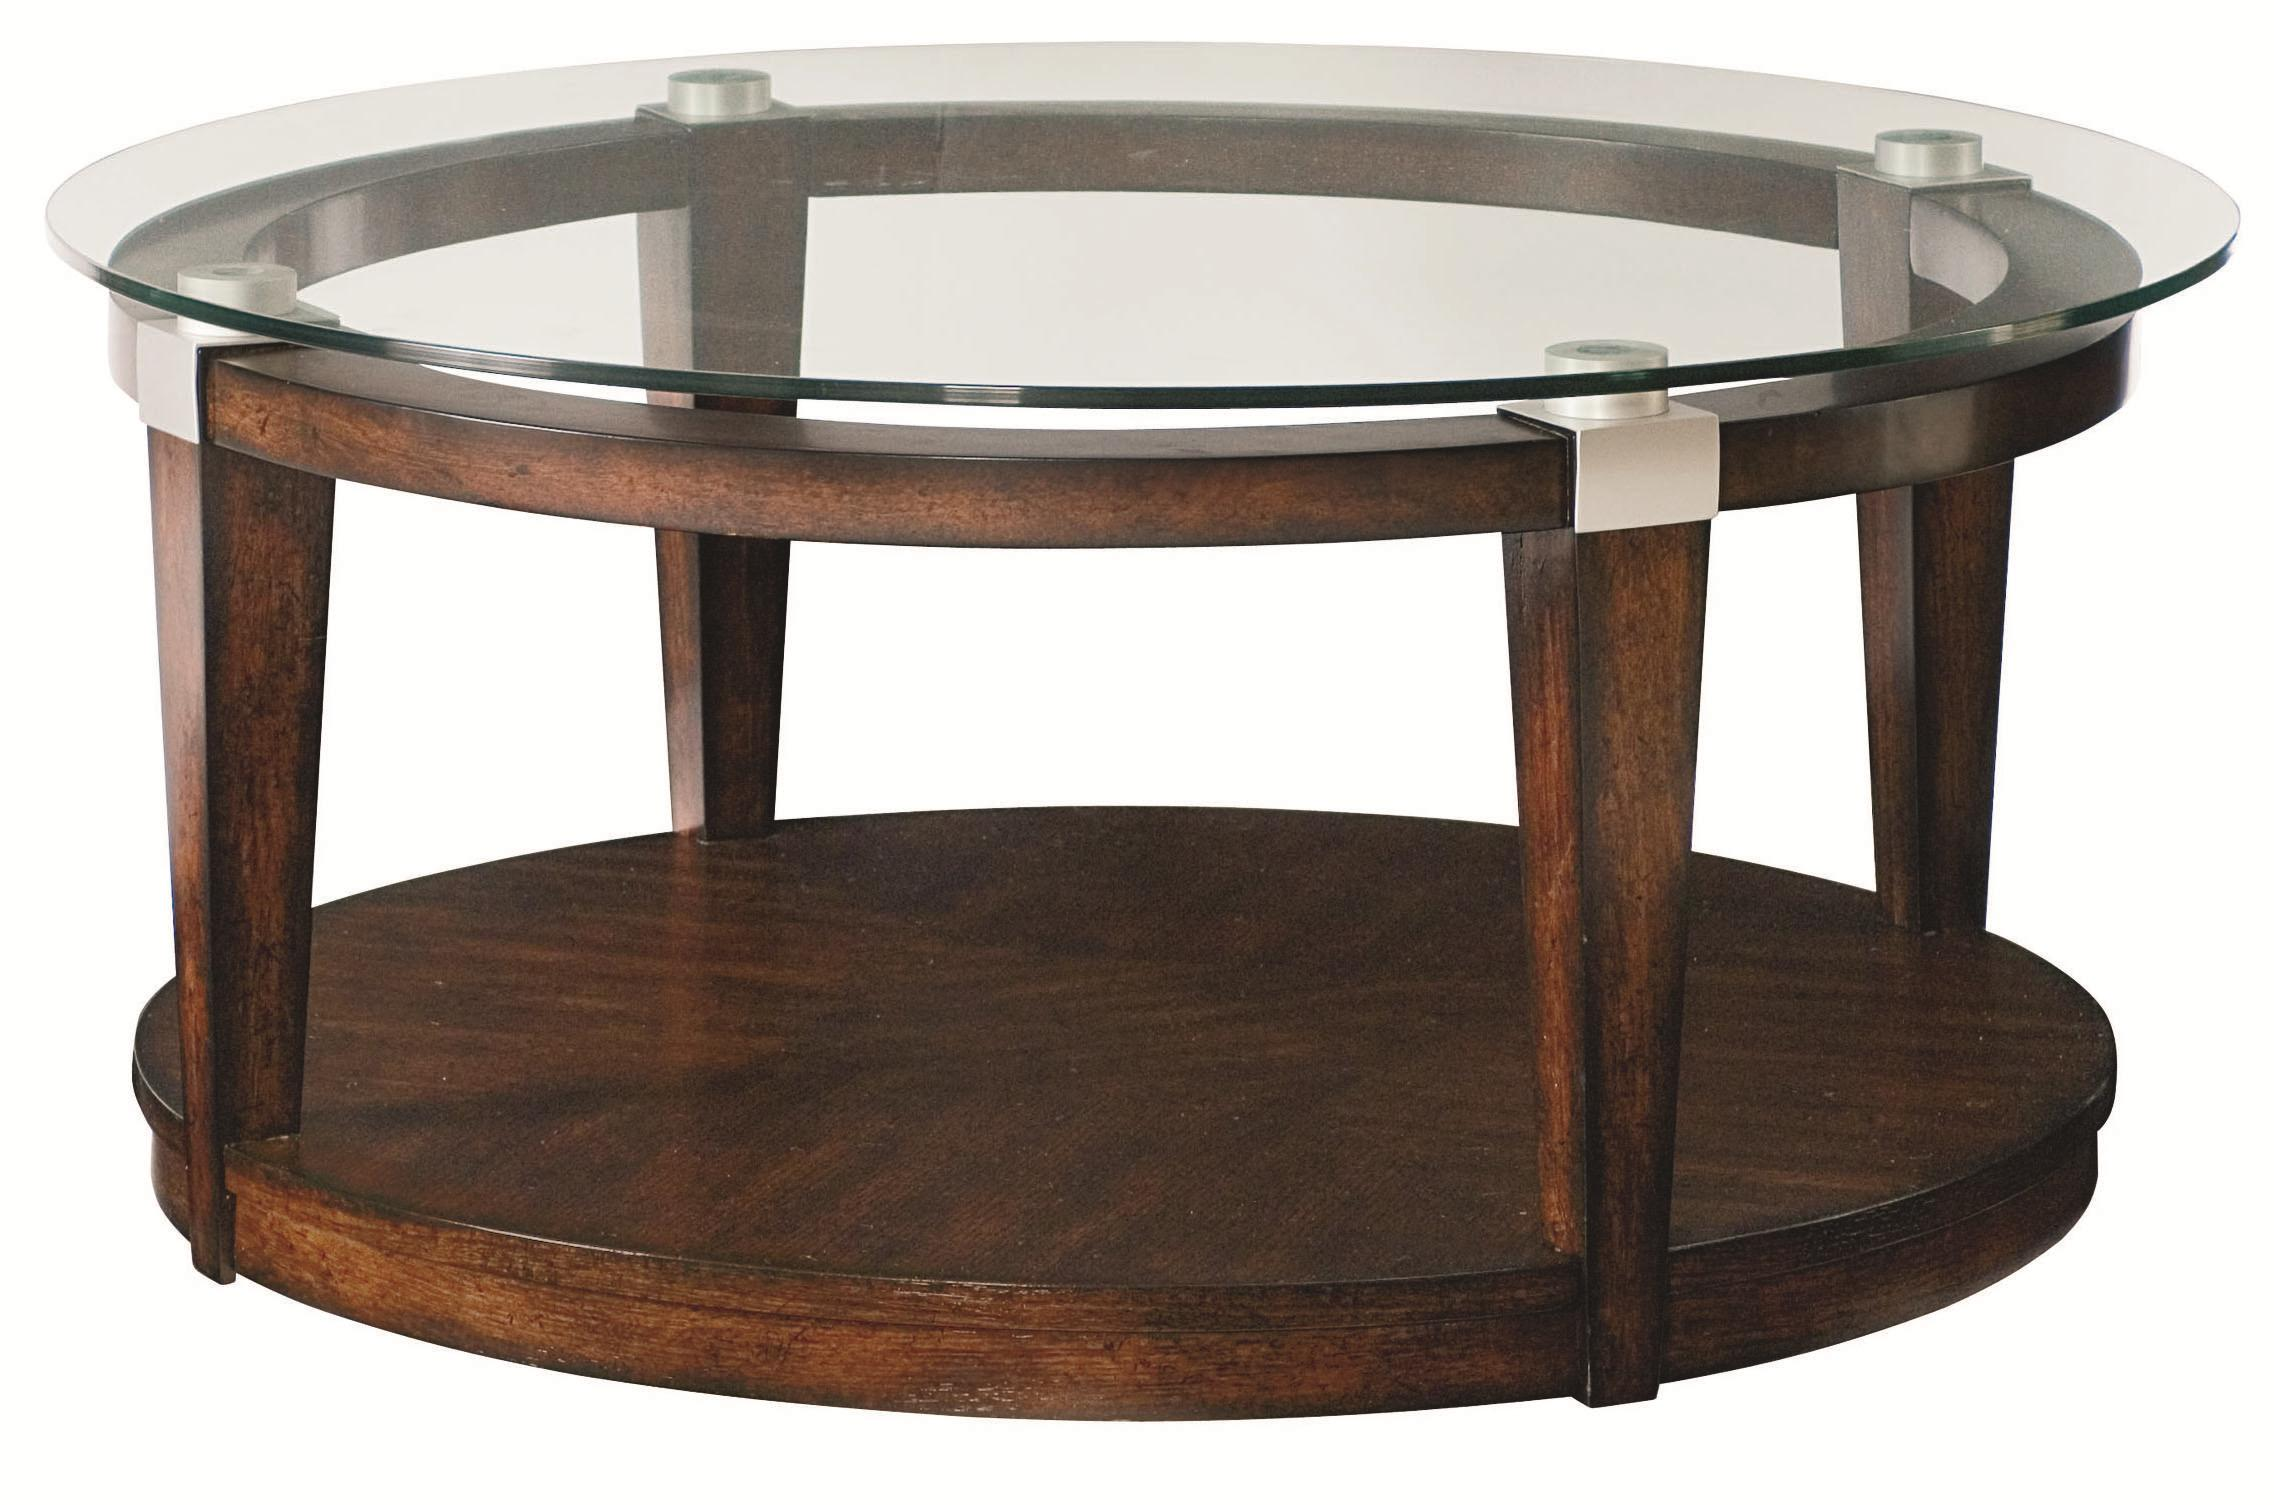 Hammary solitaire contemporary round coffee table with glass top hudson 39 s furniture cocktail Glass contemporary coffee table